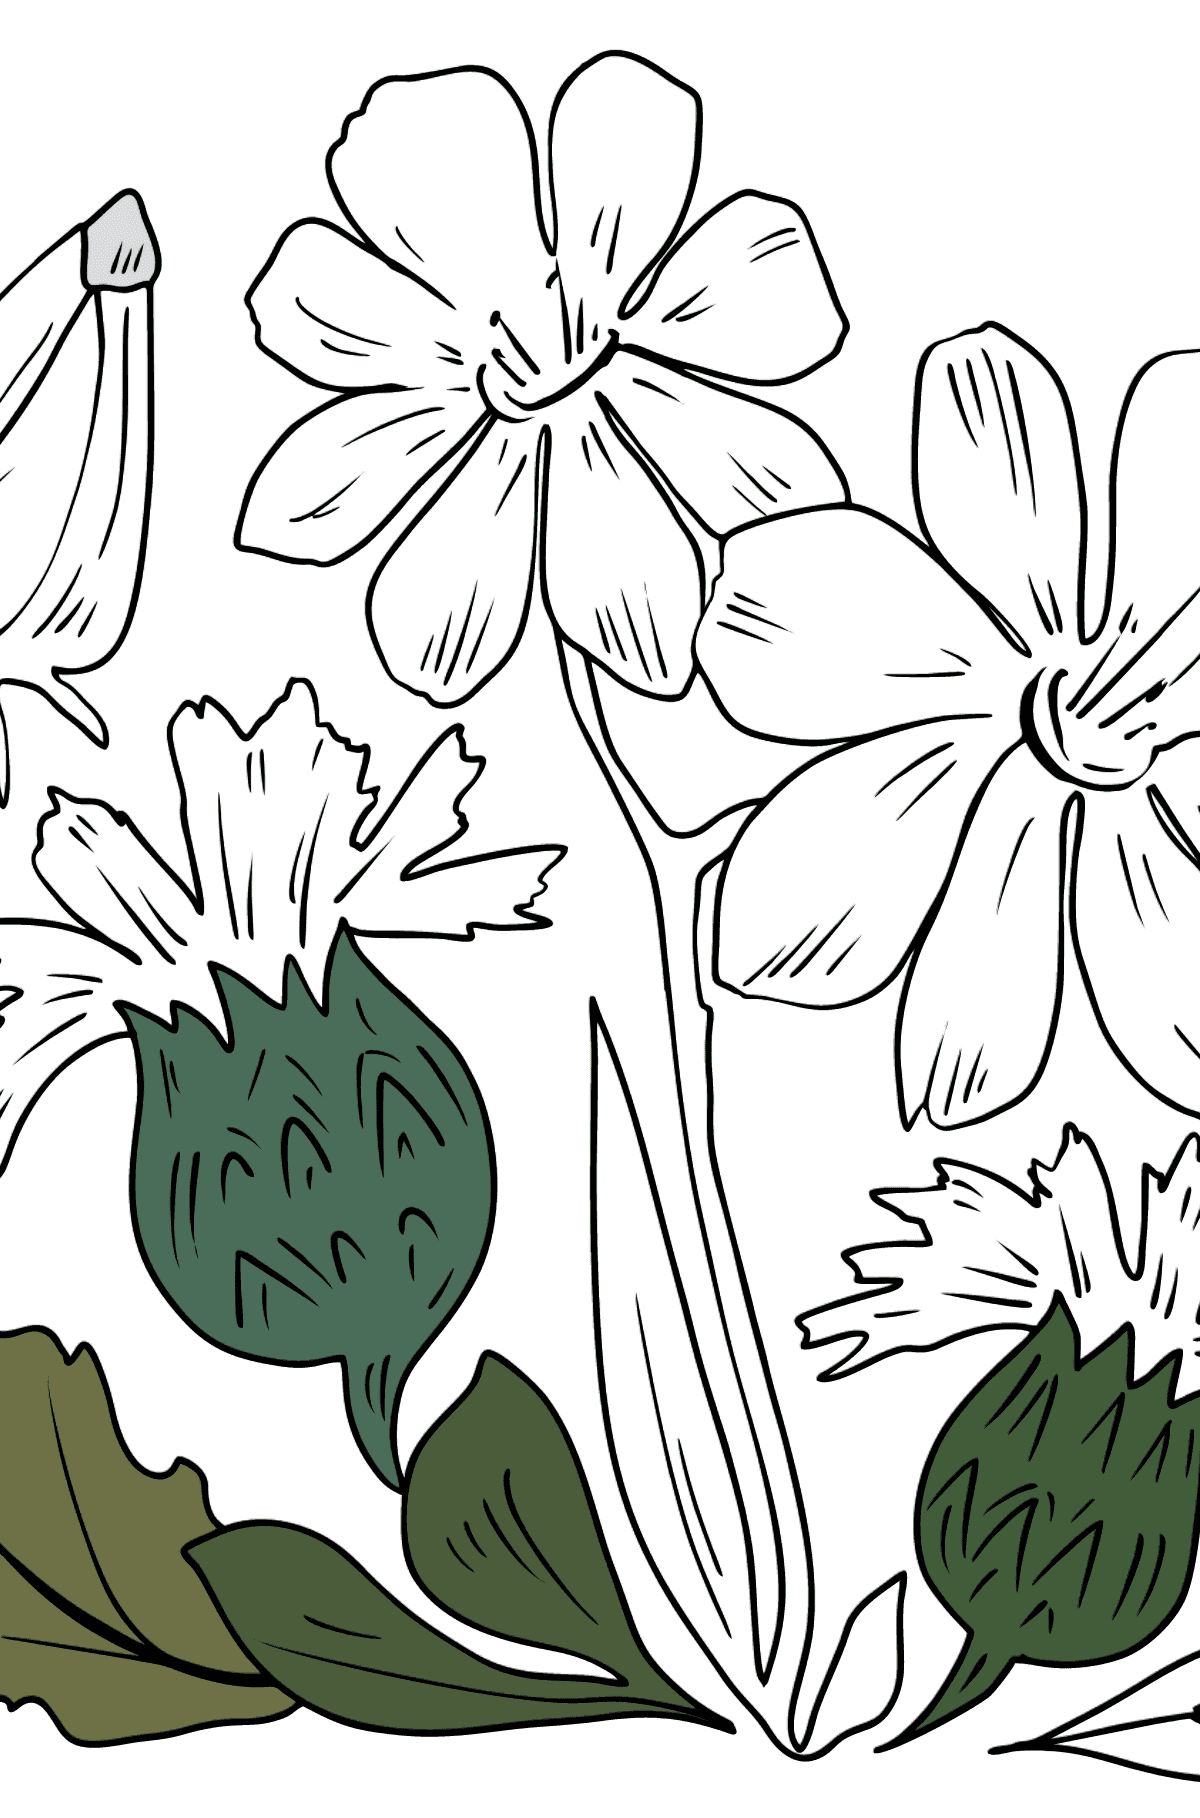 Flower Coloring Page - flowers in the meadow - Coloring Pages for Kids